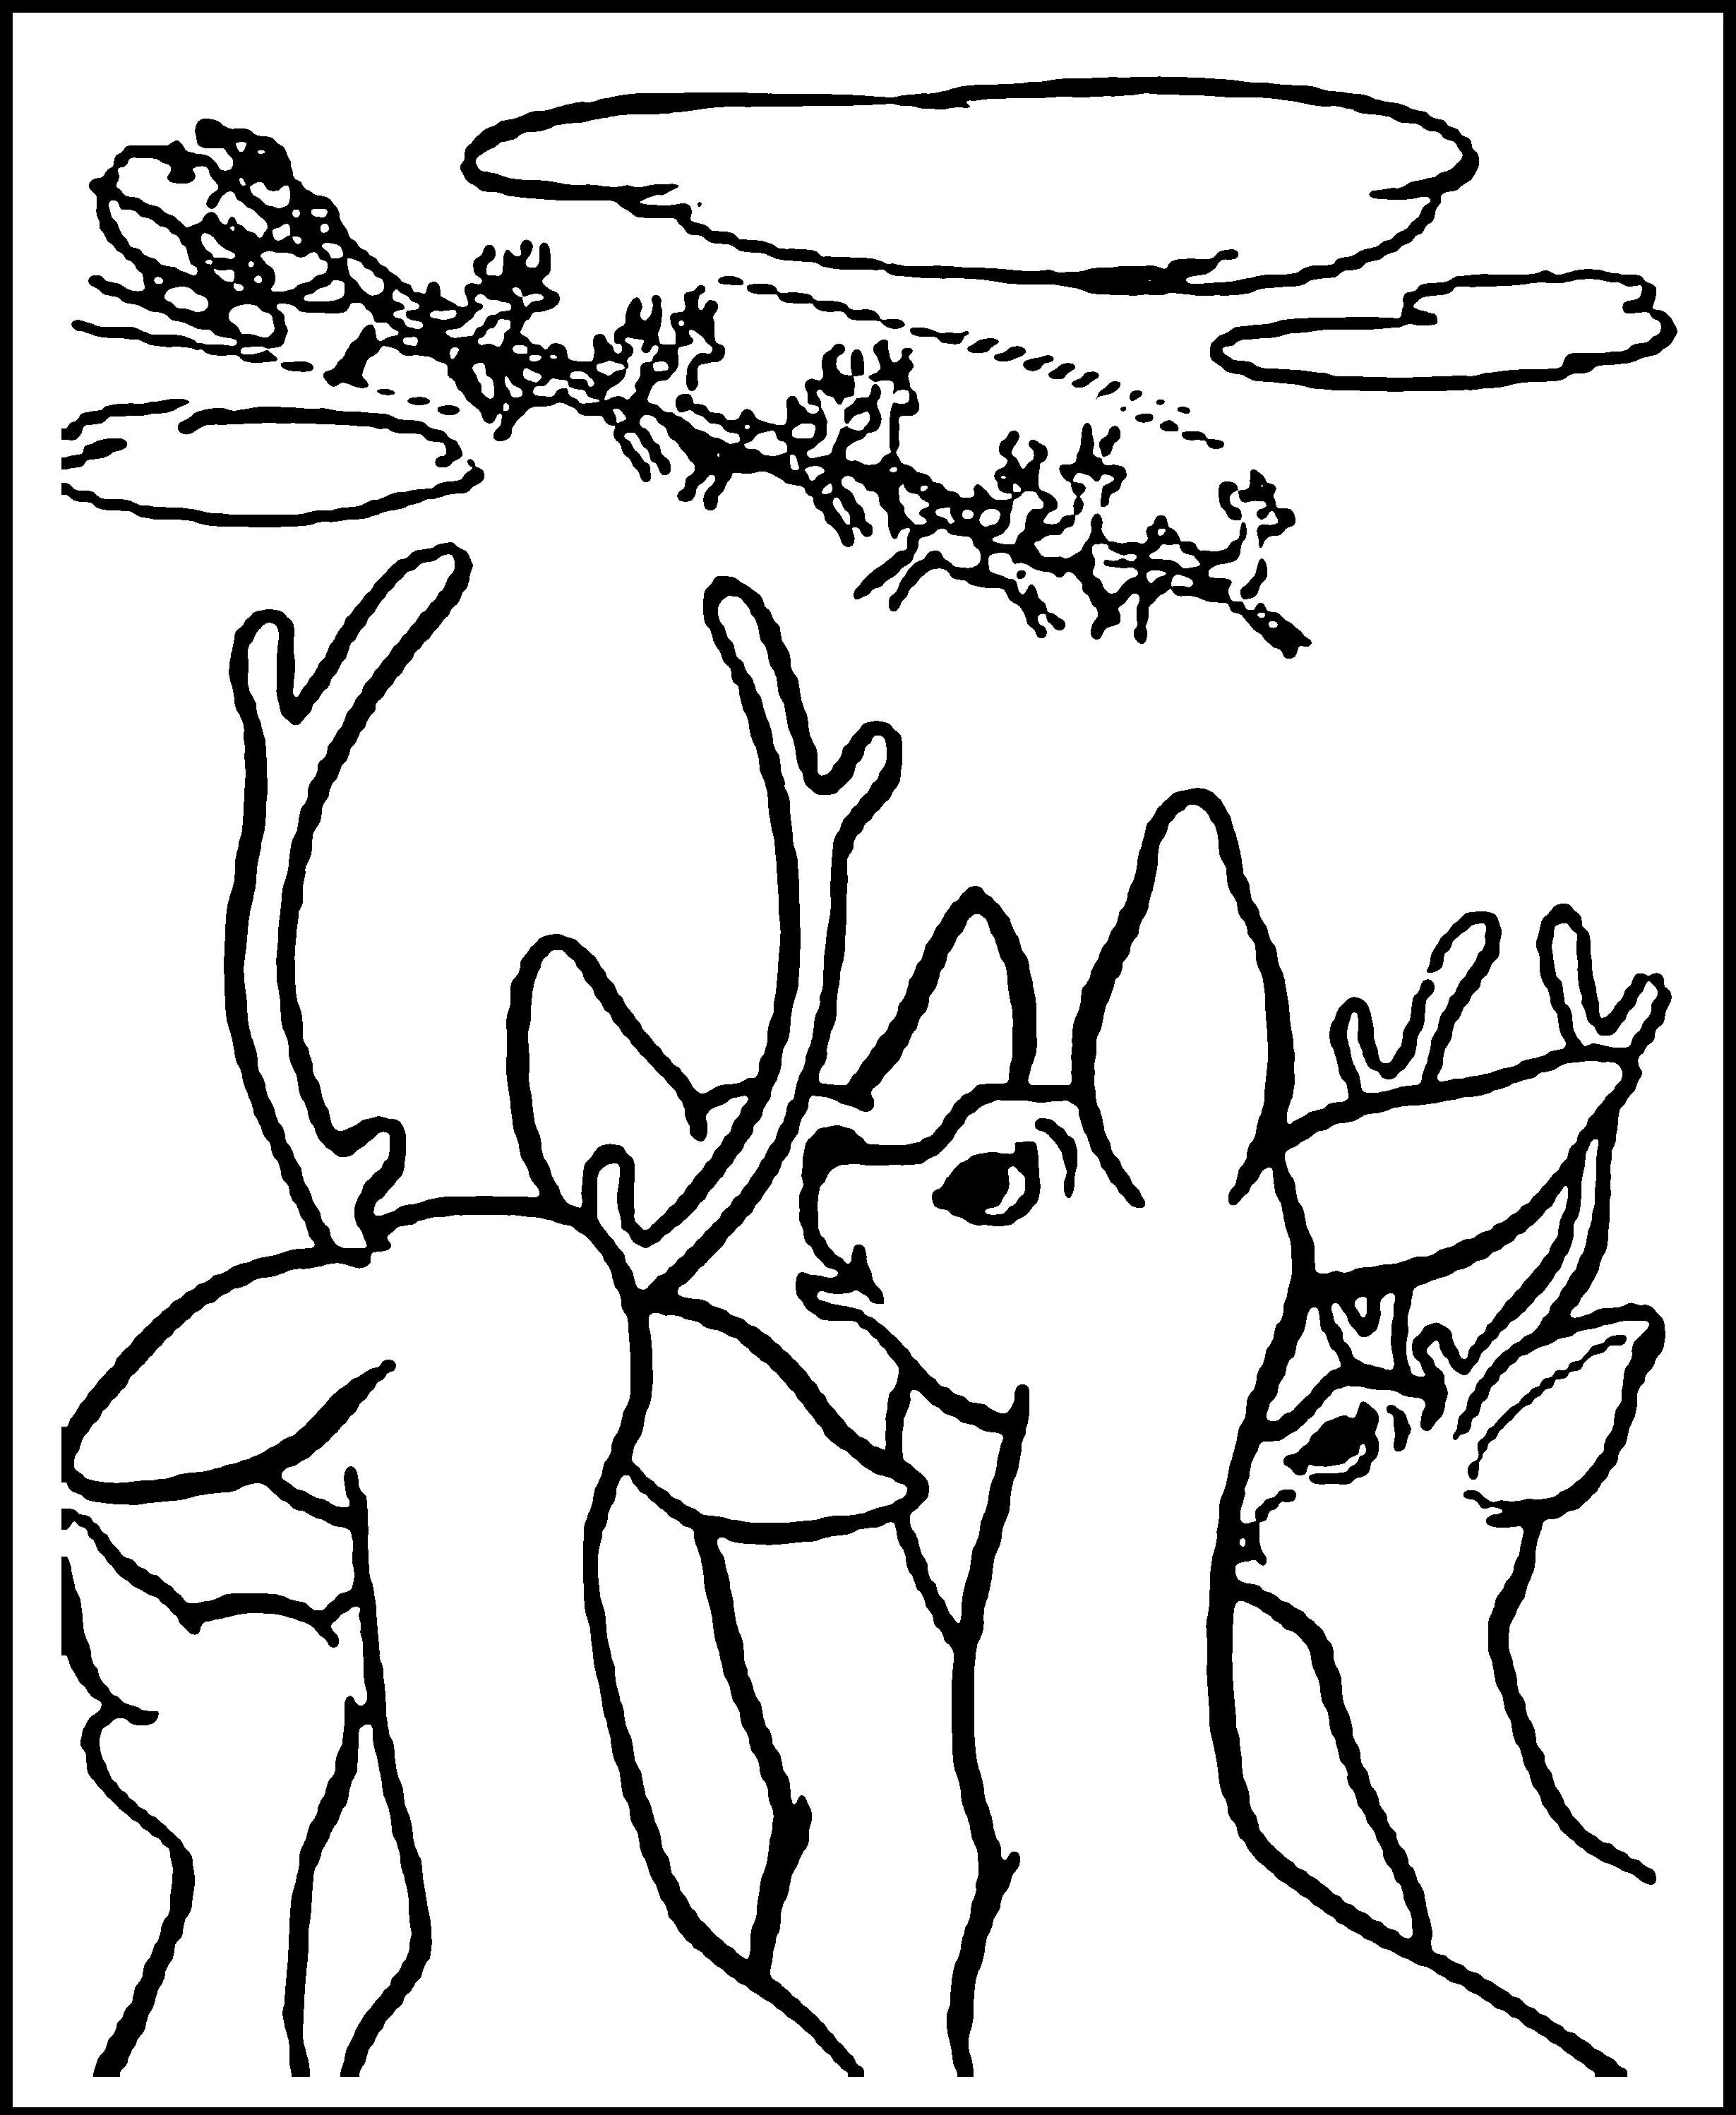 caribou coloring pages - photo#32